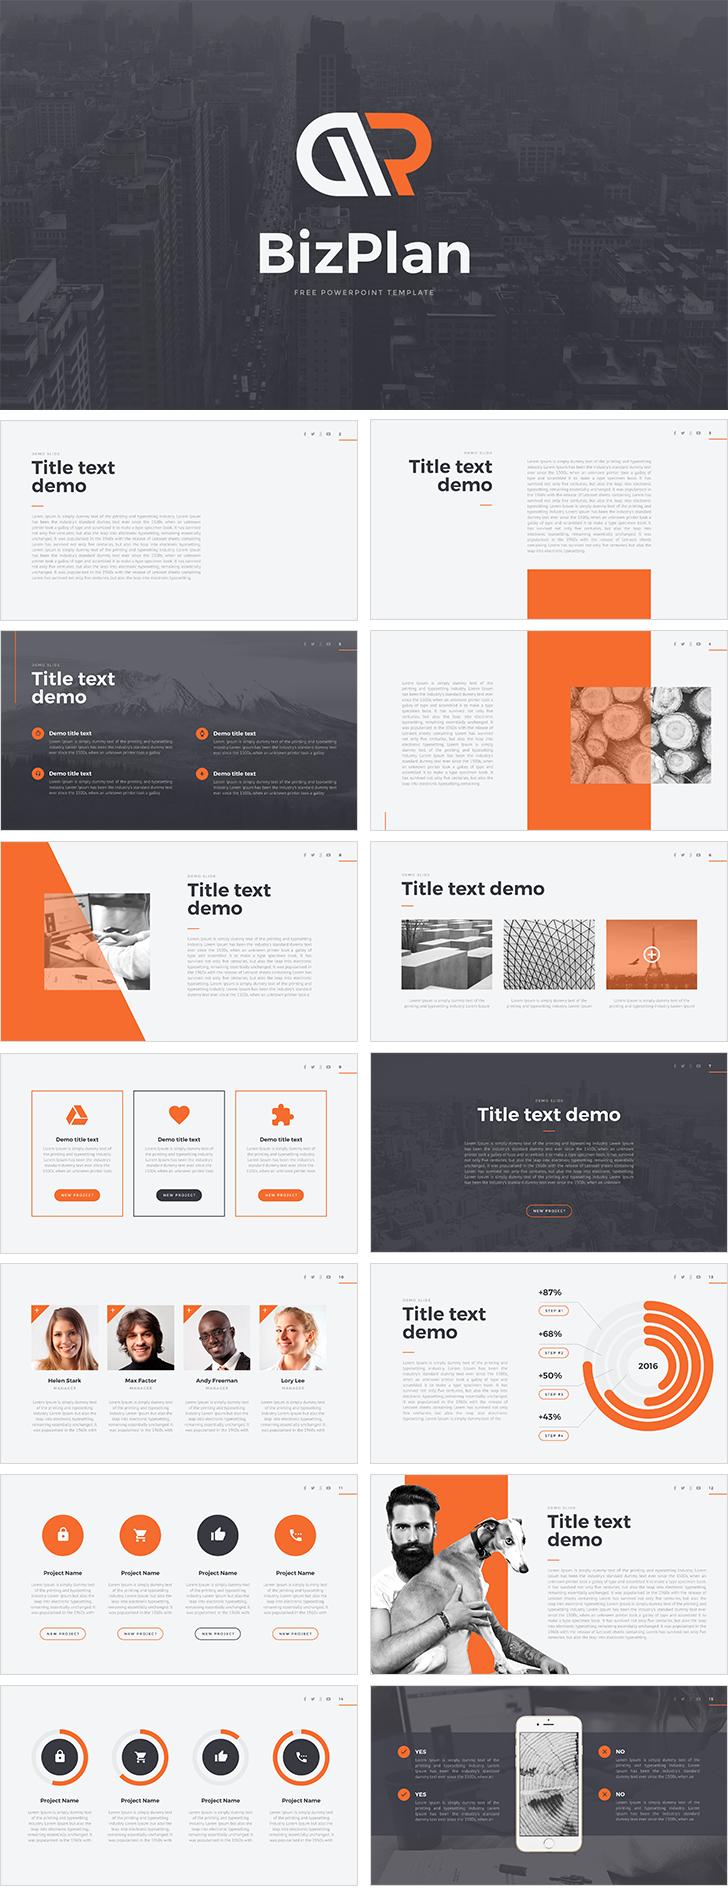 Bizplan free powerpoint template download free bizplan free powerpoint template alramifo Images